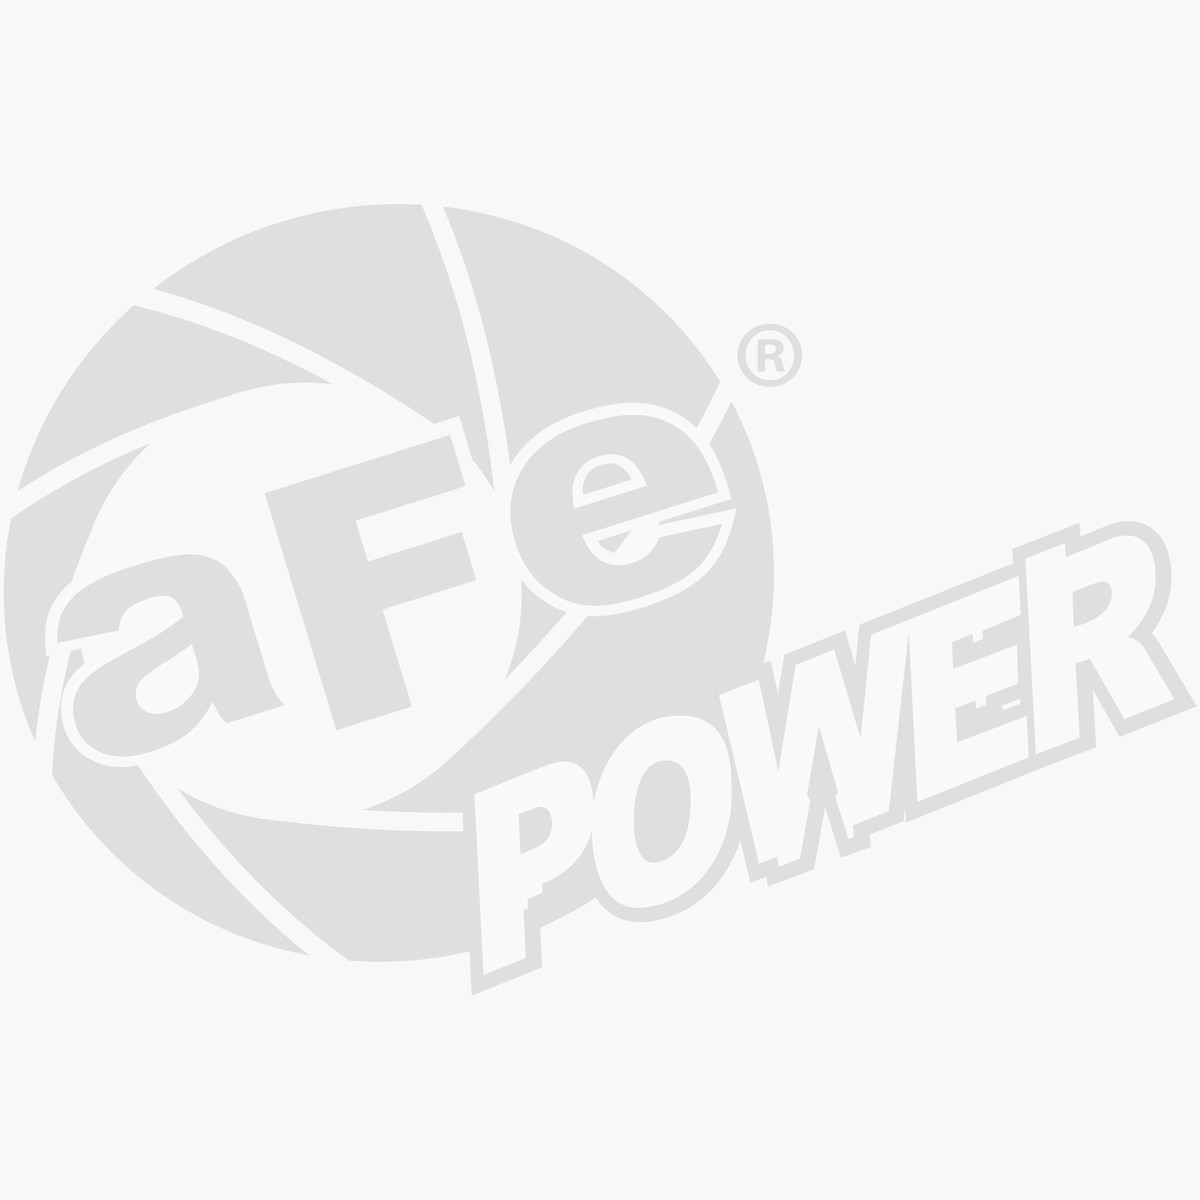 aFe POWER 40-10107 Badge aFe Power Urocal Large; 3.27 in x 5 in